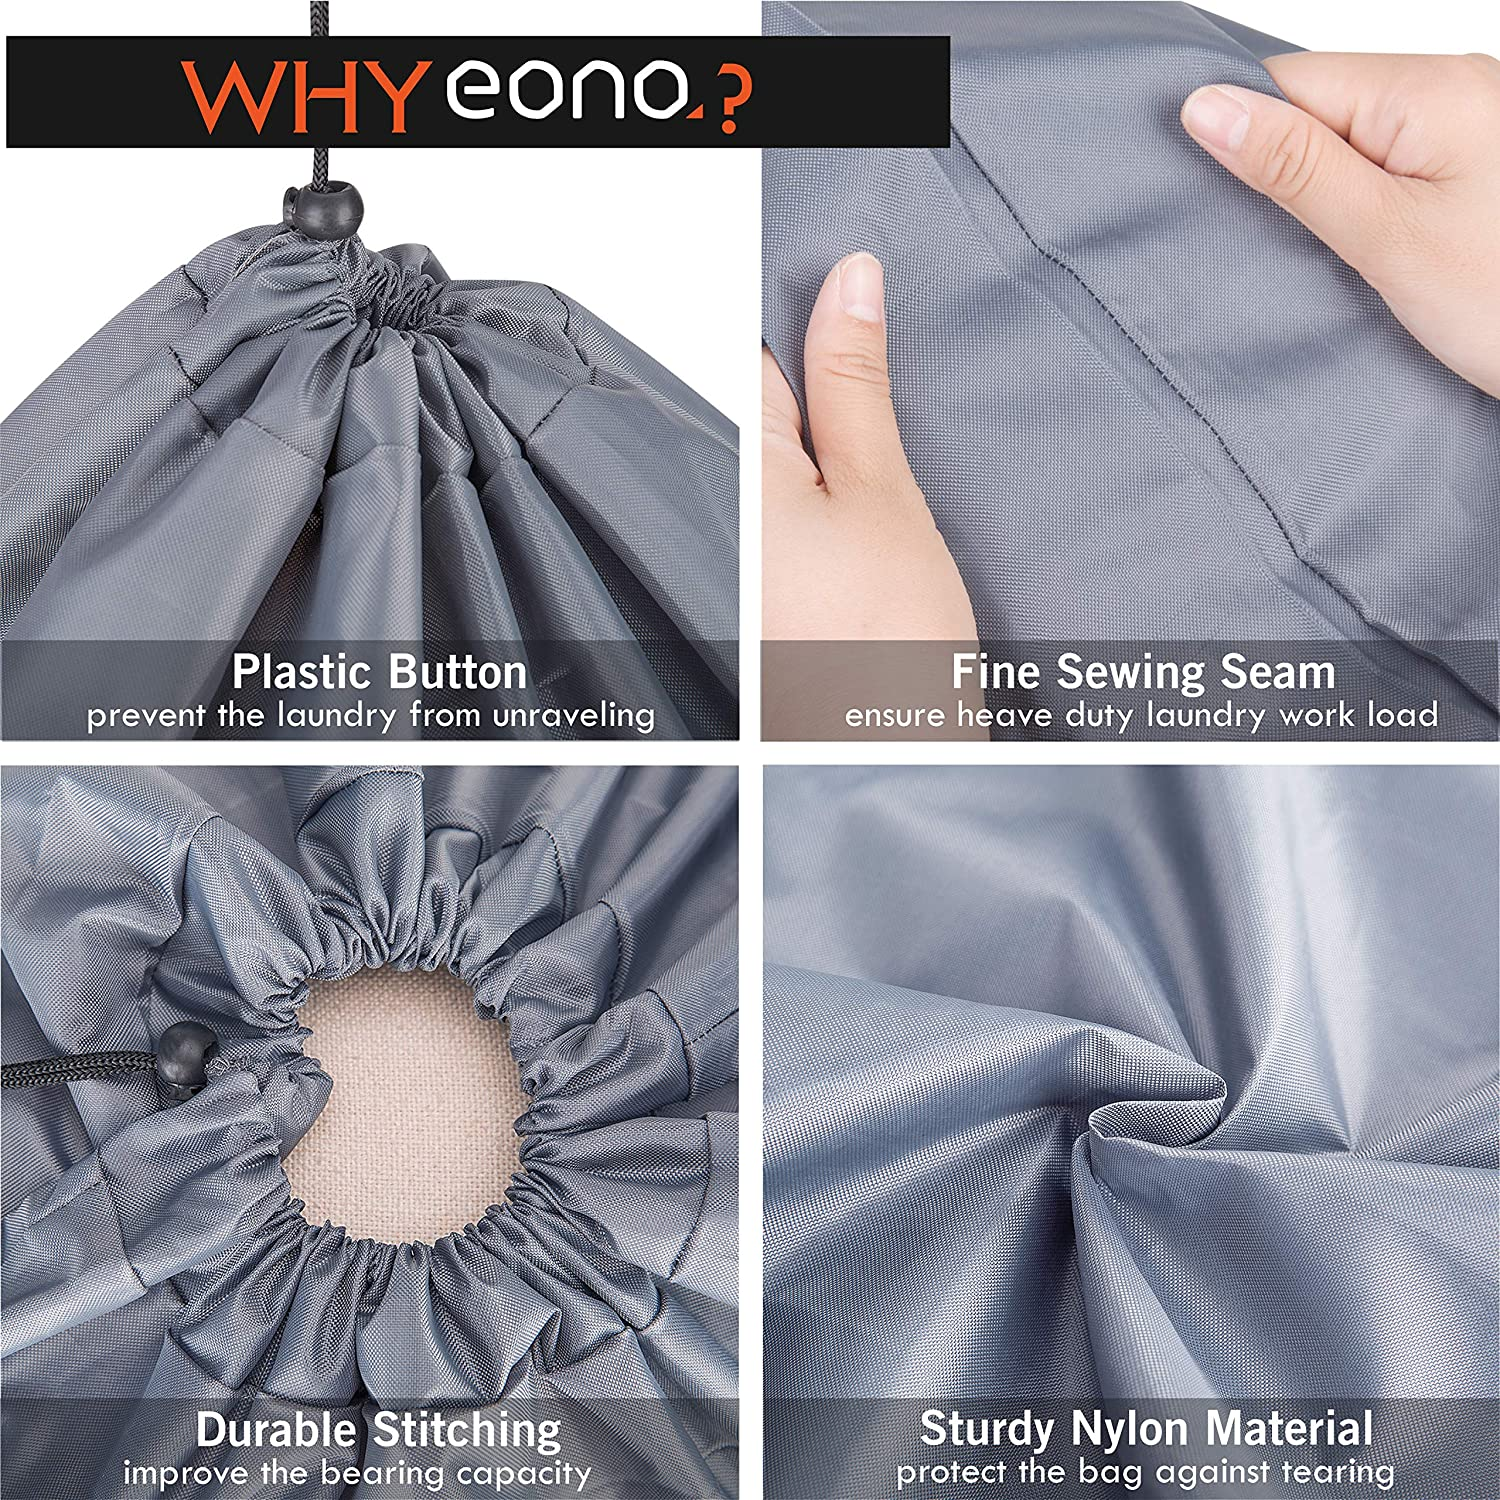 Foldable Storage Bag with Drawstring Cord Lock Dark Grey Blanket Quilt Bag Dirty Clothes Bags for Home or Dormitory as Travel Bag Eono  Brand Extra Large Laundry Bags